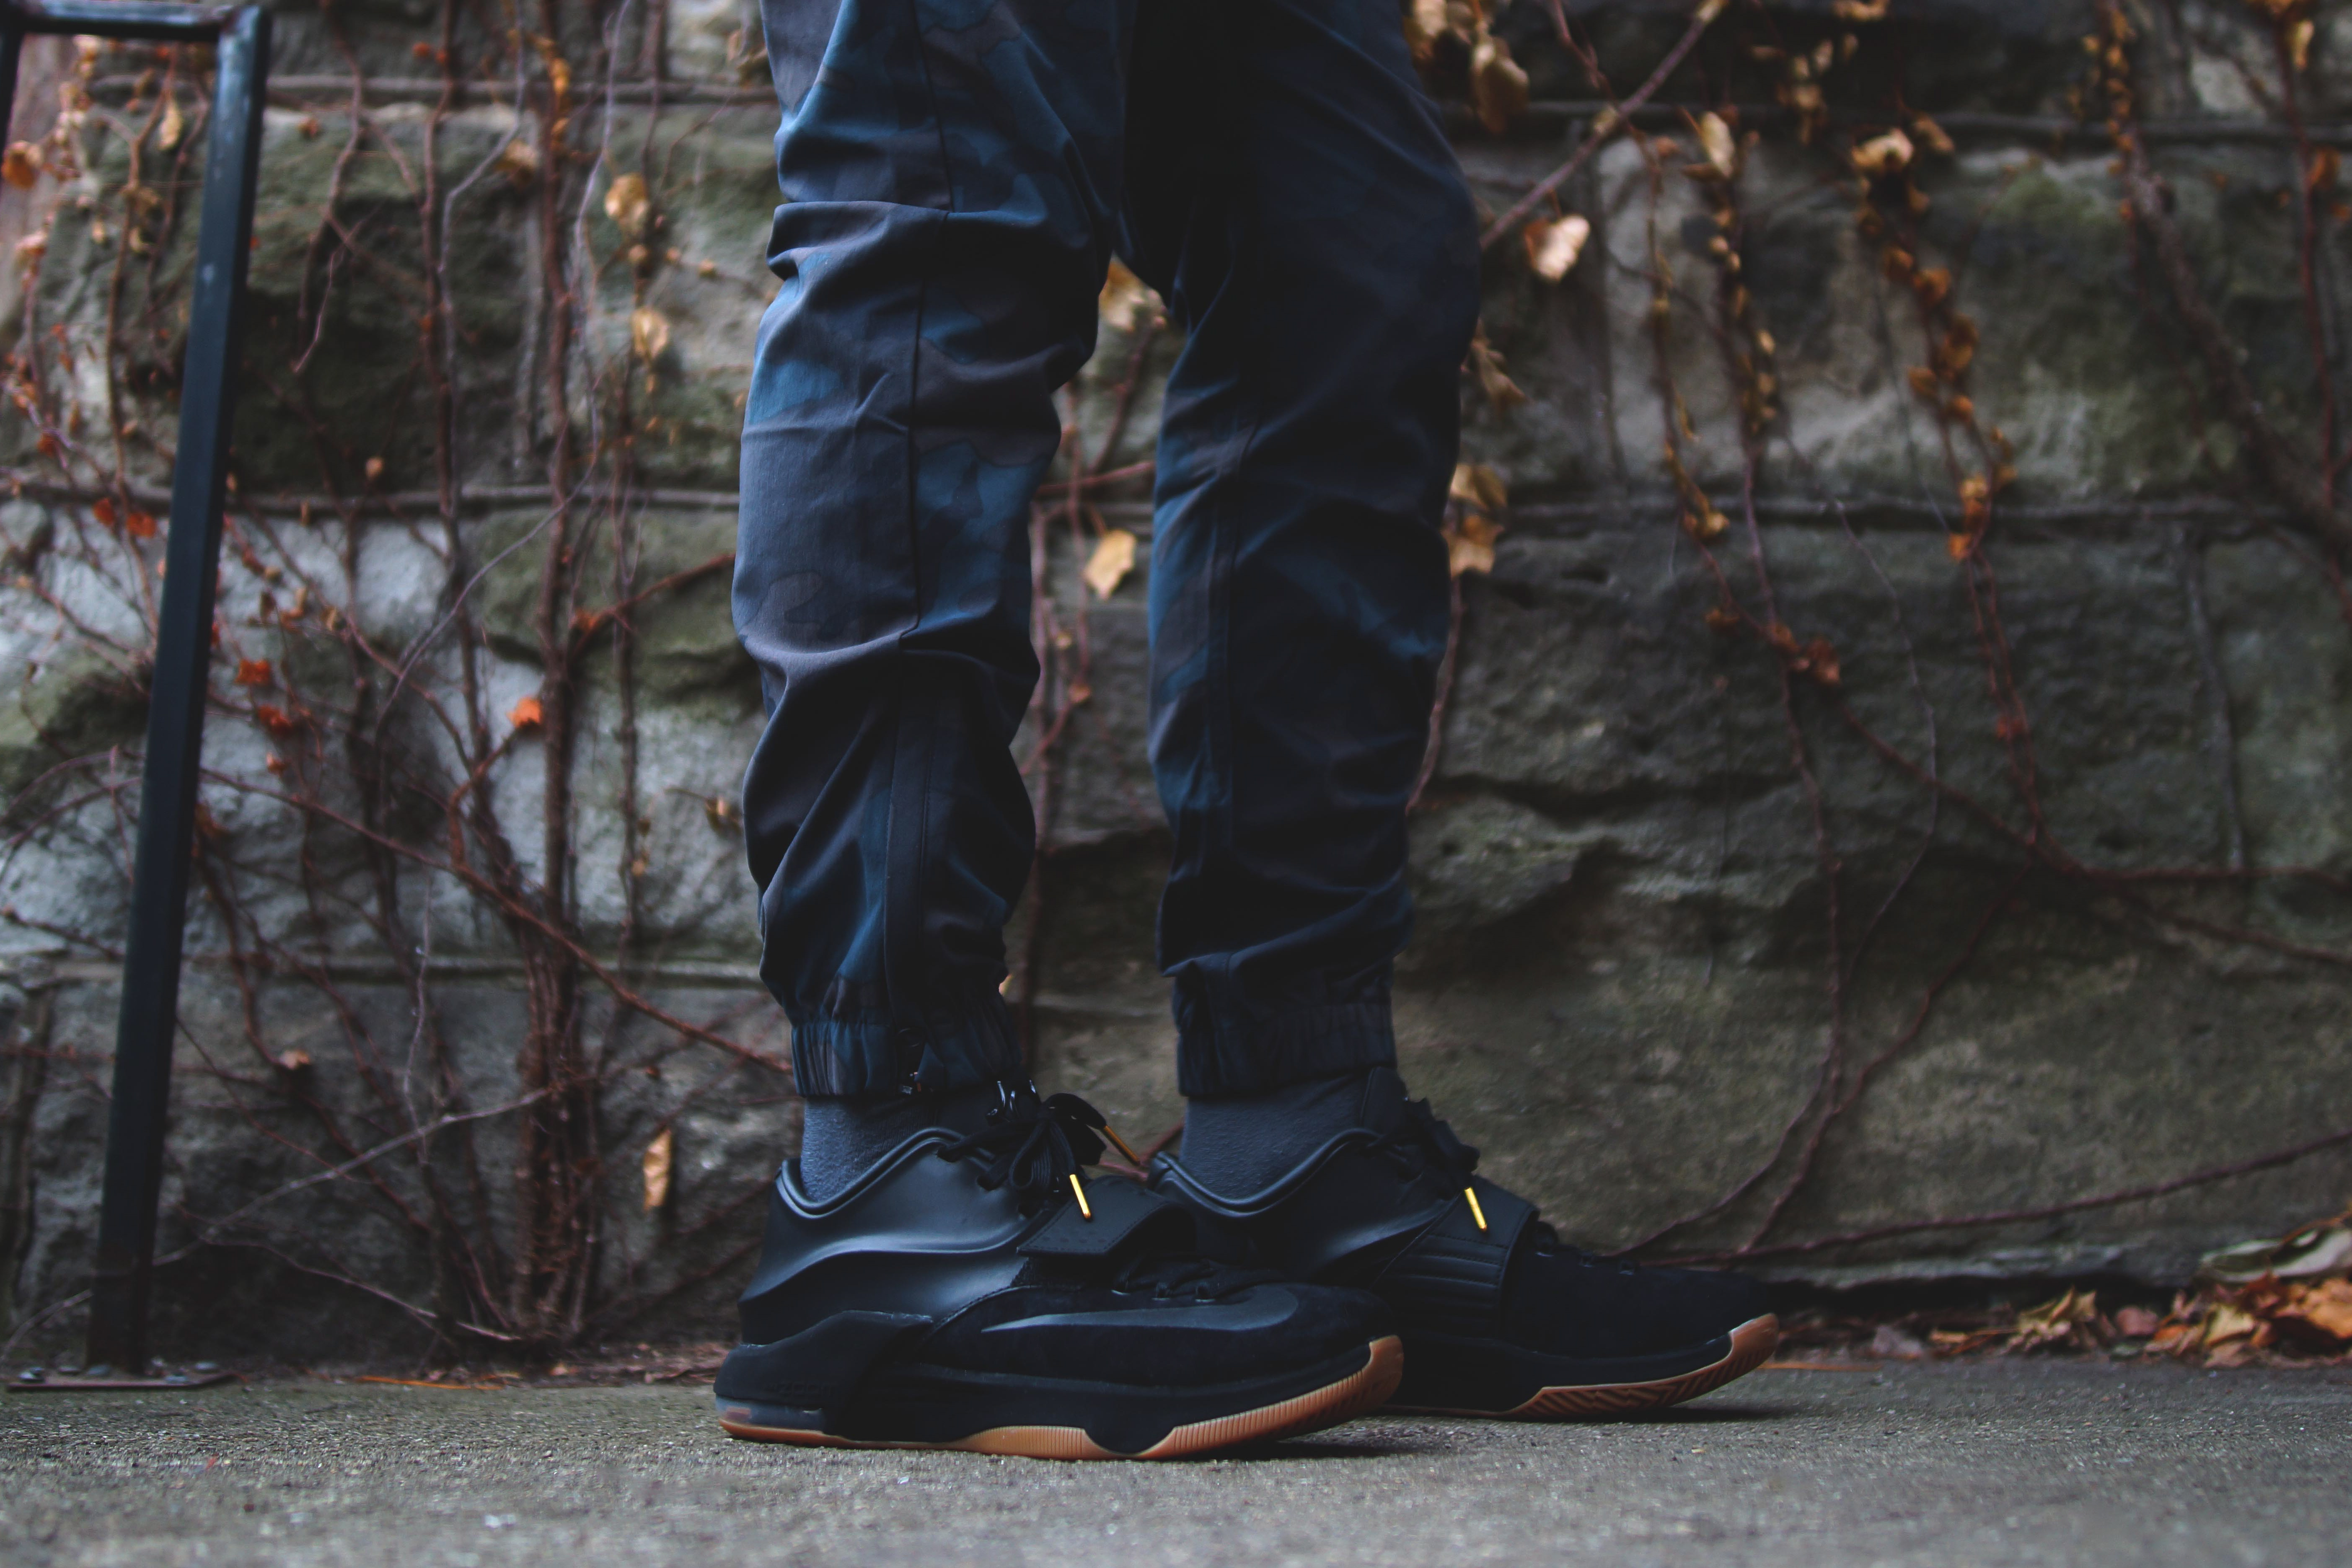 huge selection of b46d8 9079e One Of The Best Nike KD 7's Drops Tomorrow In Black Suede ...